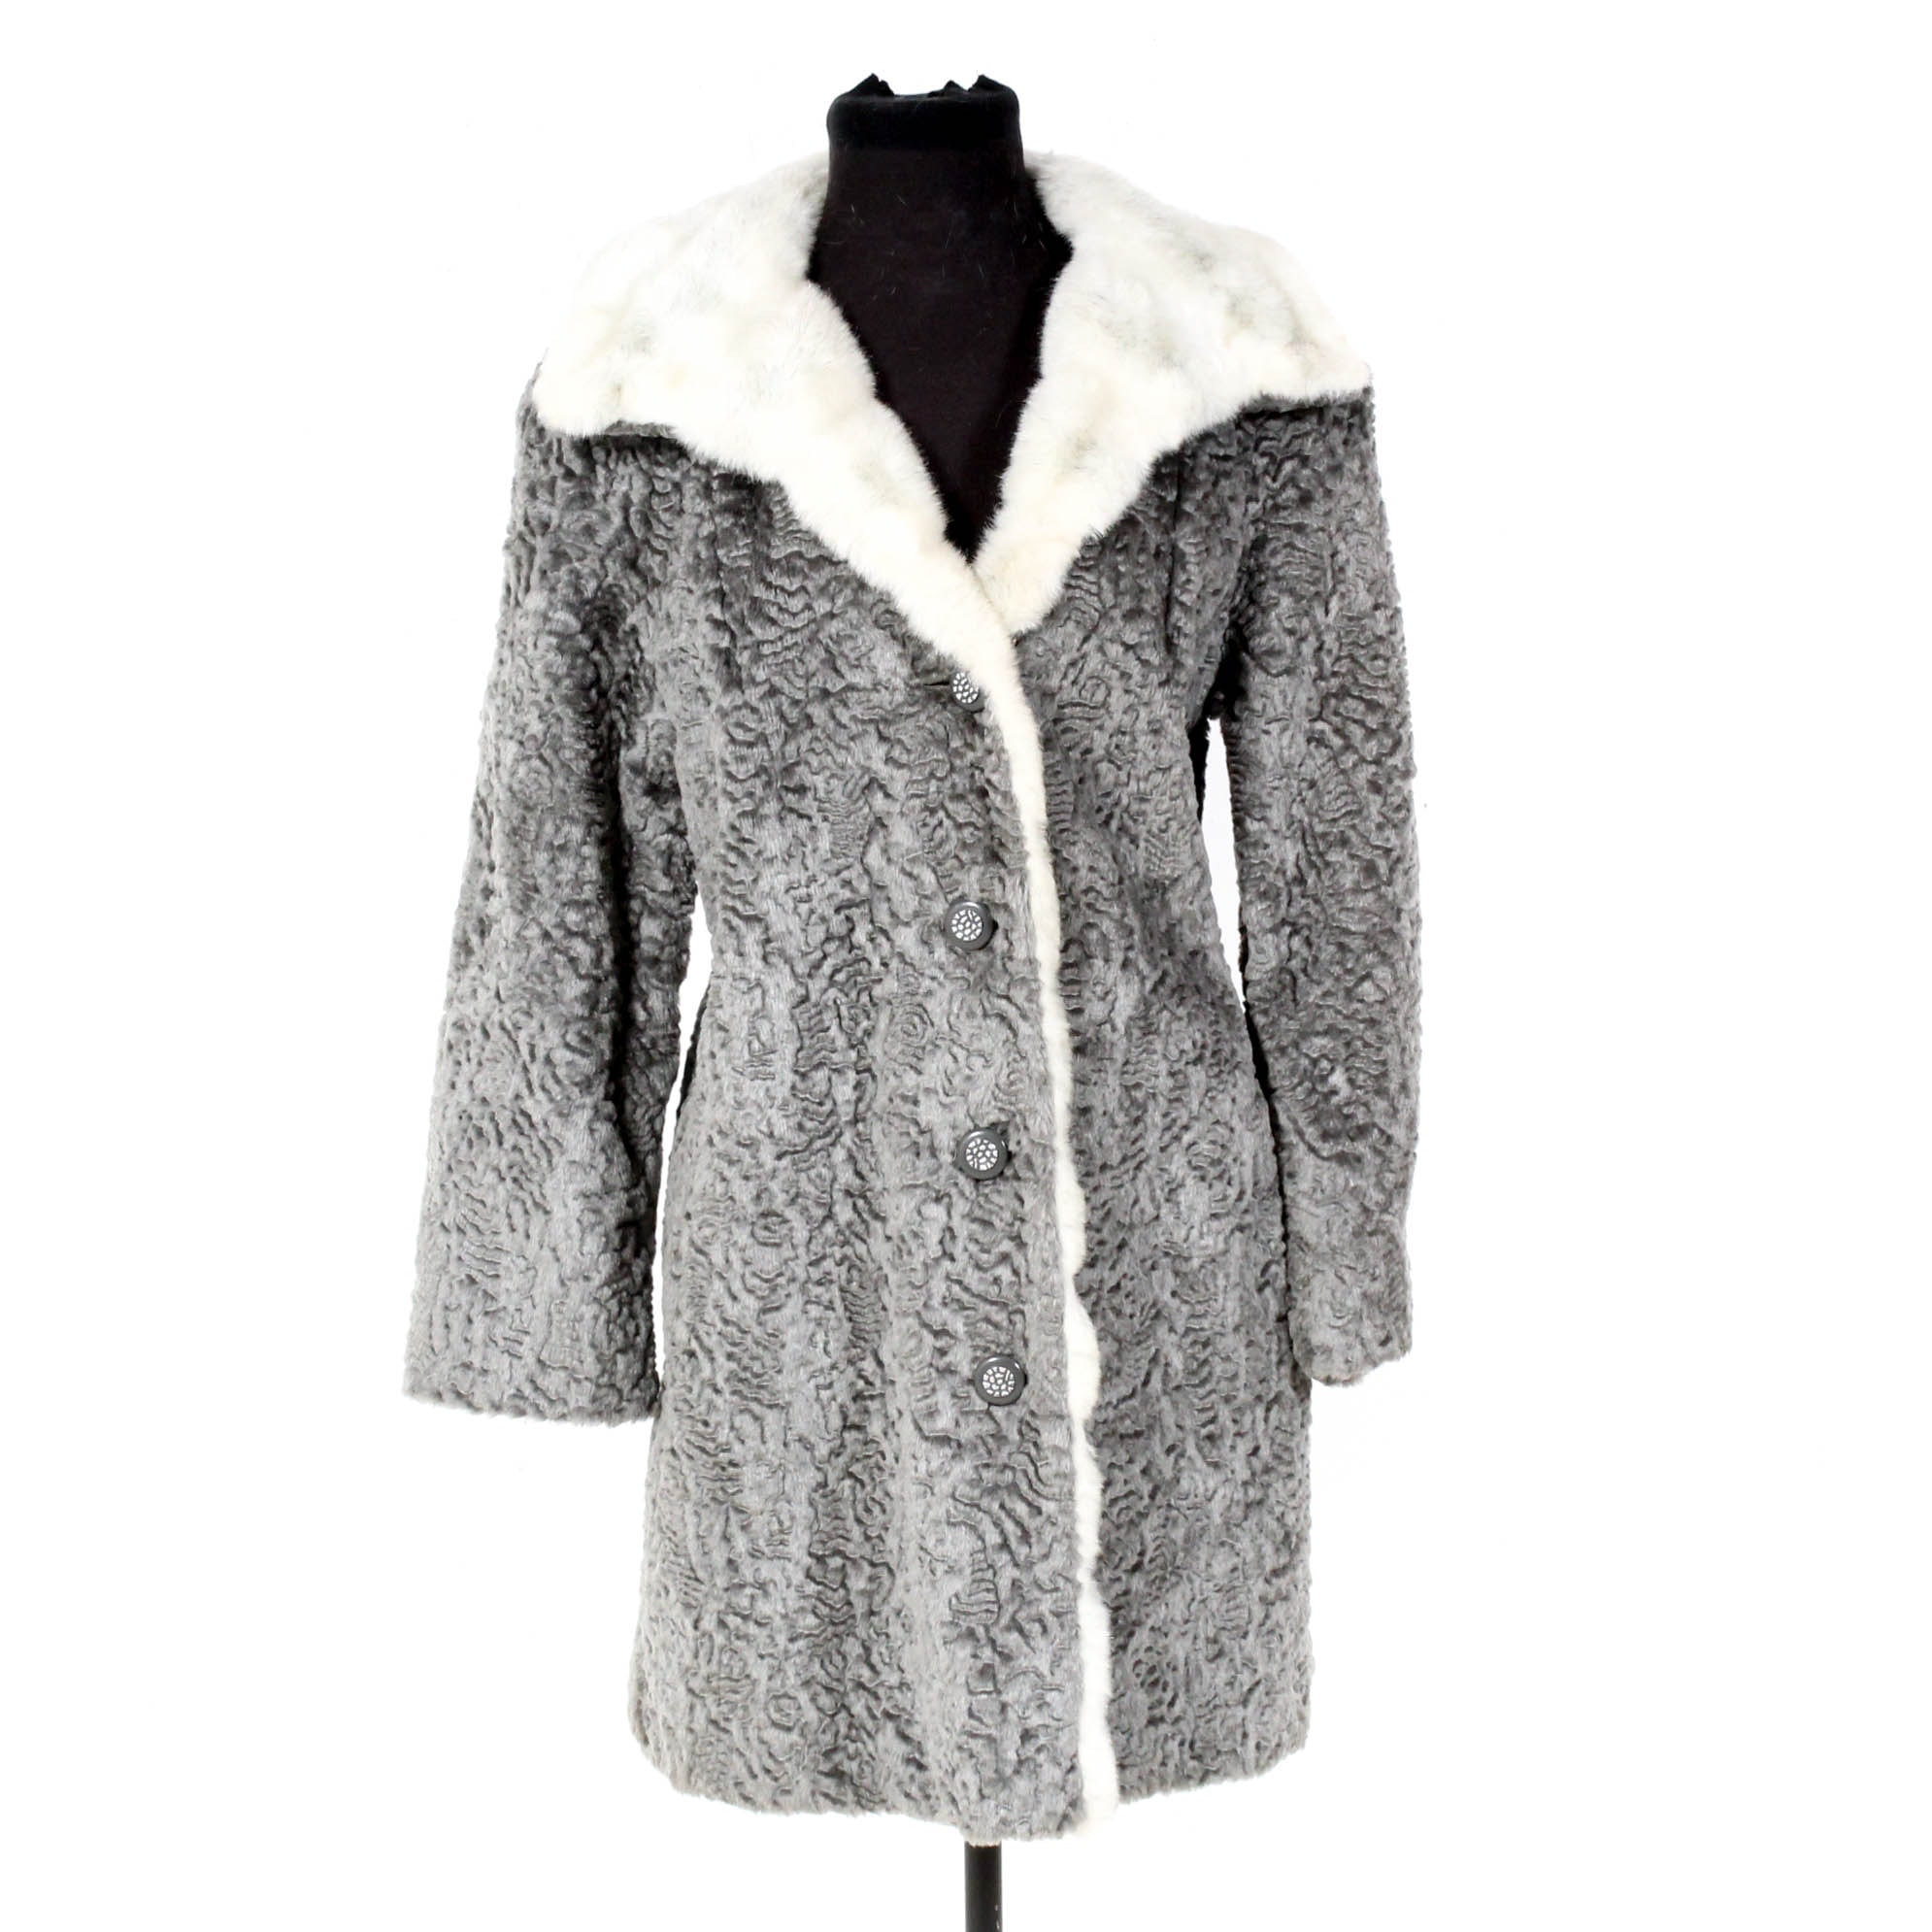 Vintage Faux Persian Lamb Fur Coat